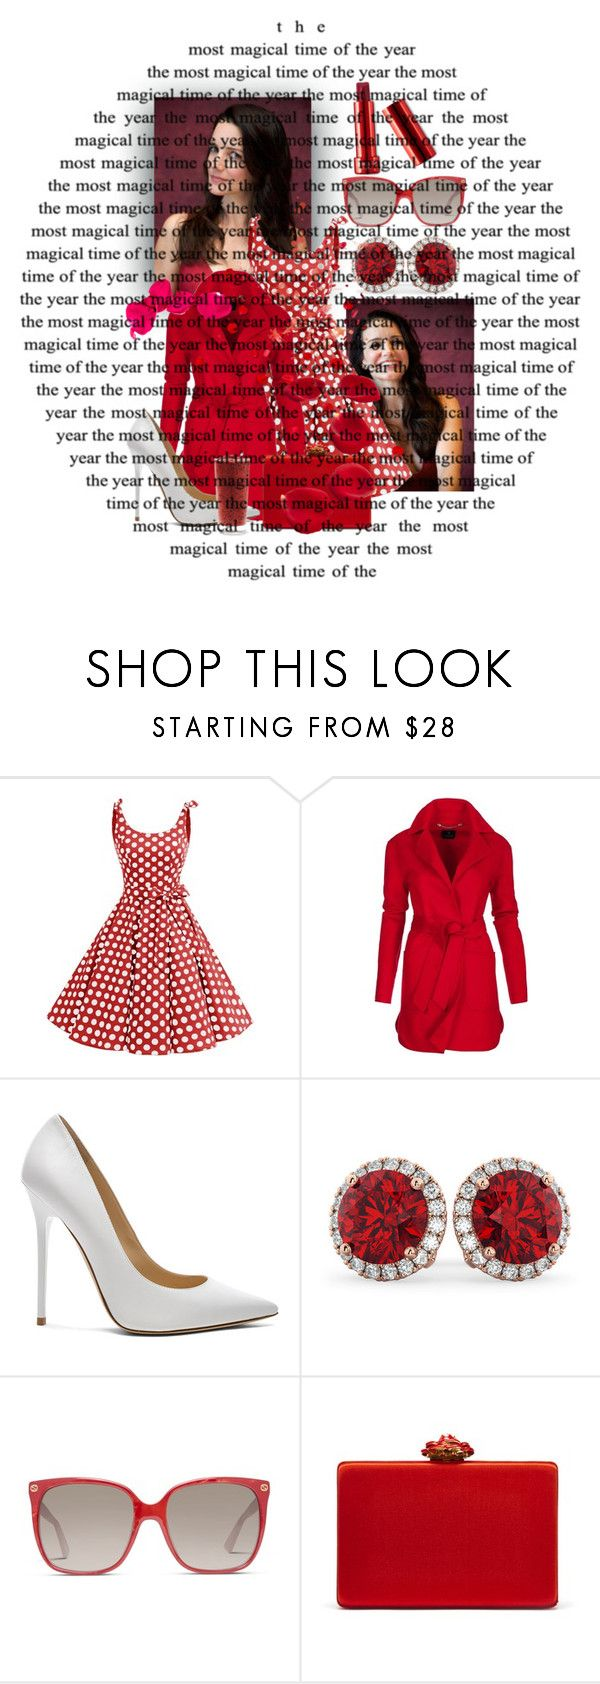 """""""Untitled #9387"""" by princhelle-mack ❤ liked on Polyvore featuring Jimmy Choo, Allurez, Gucci and Oscar de la Renta"""